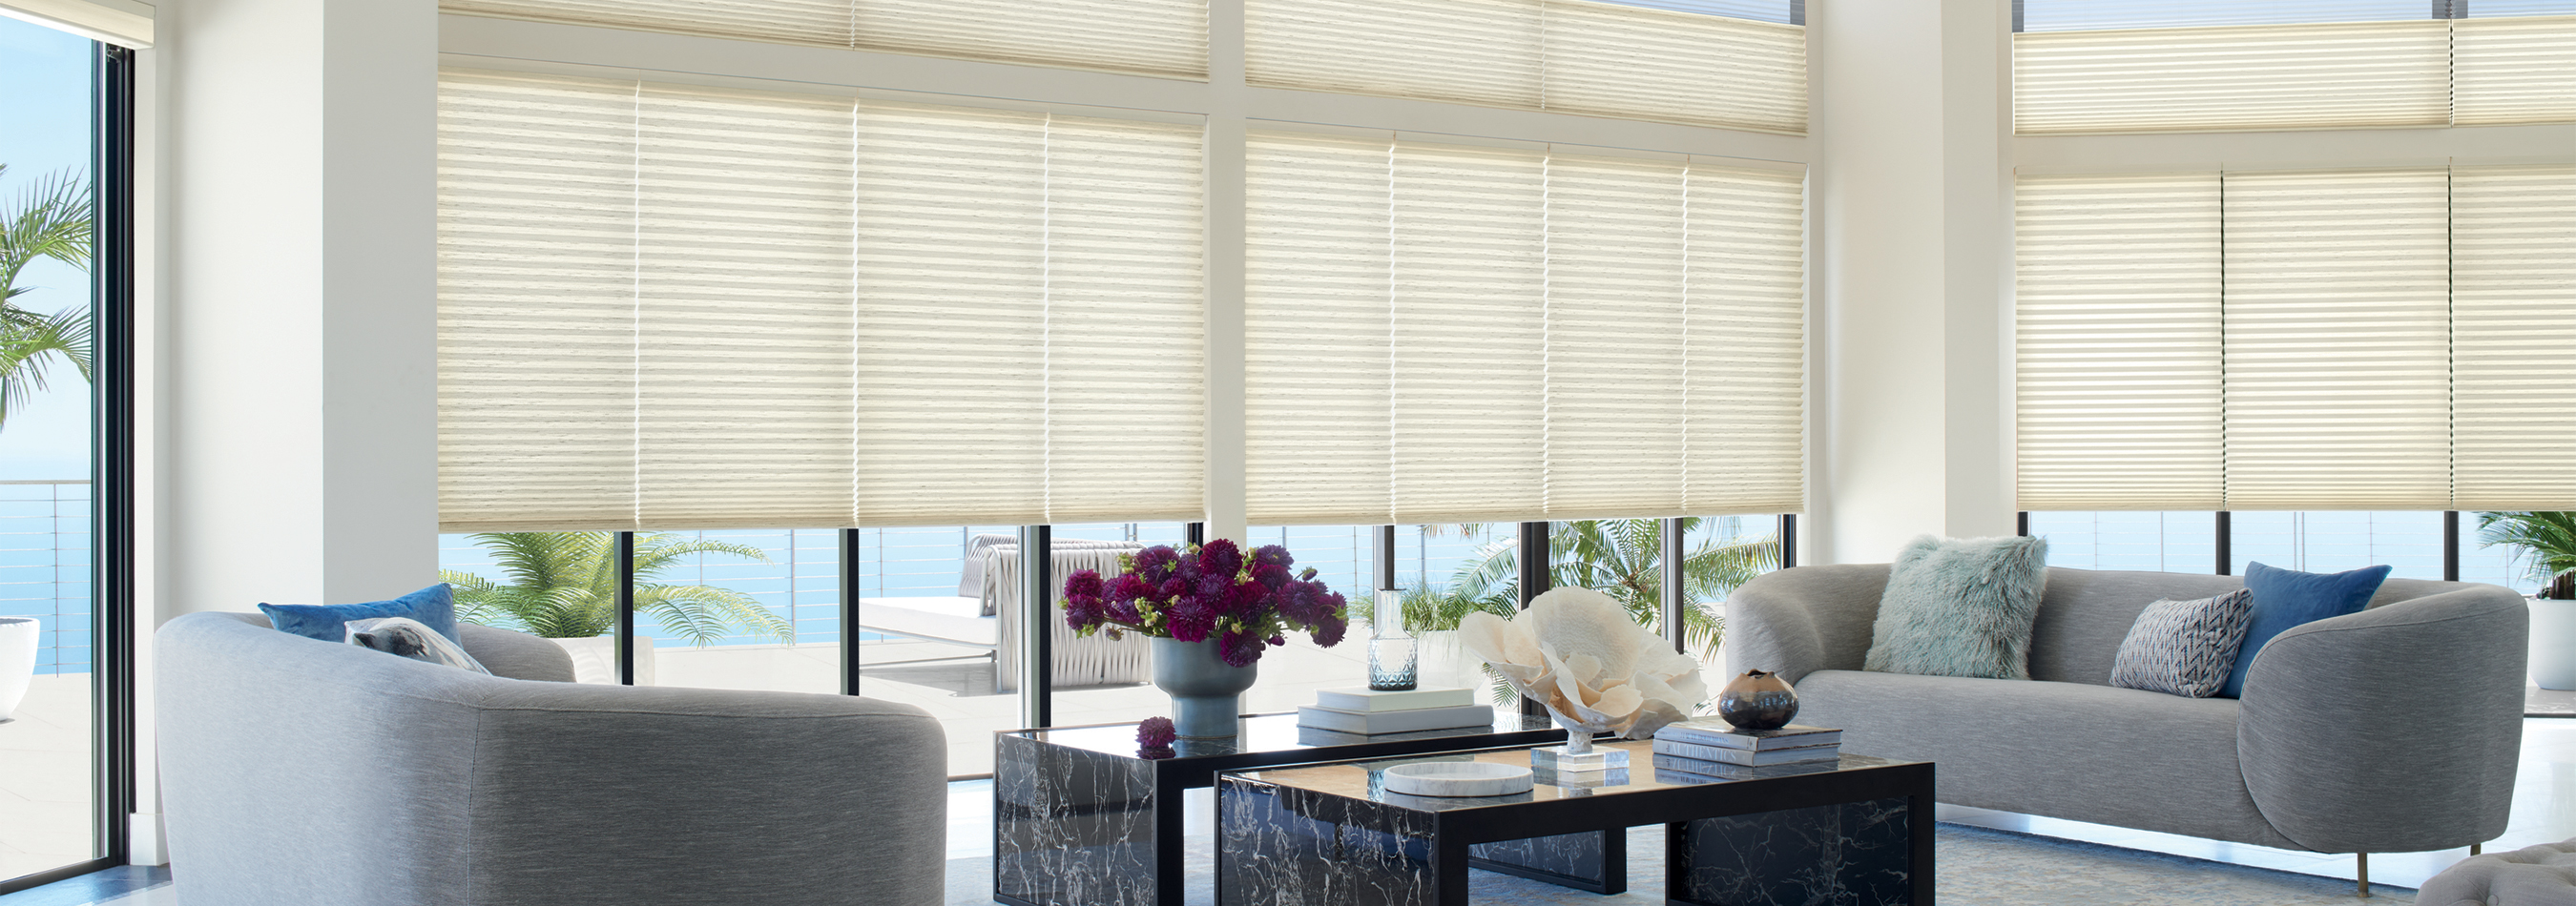 Large room surrounded by windows with beautiful translucent blinds.